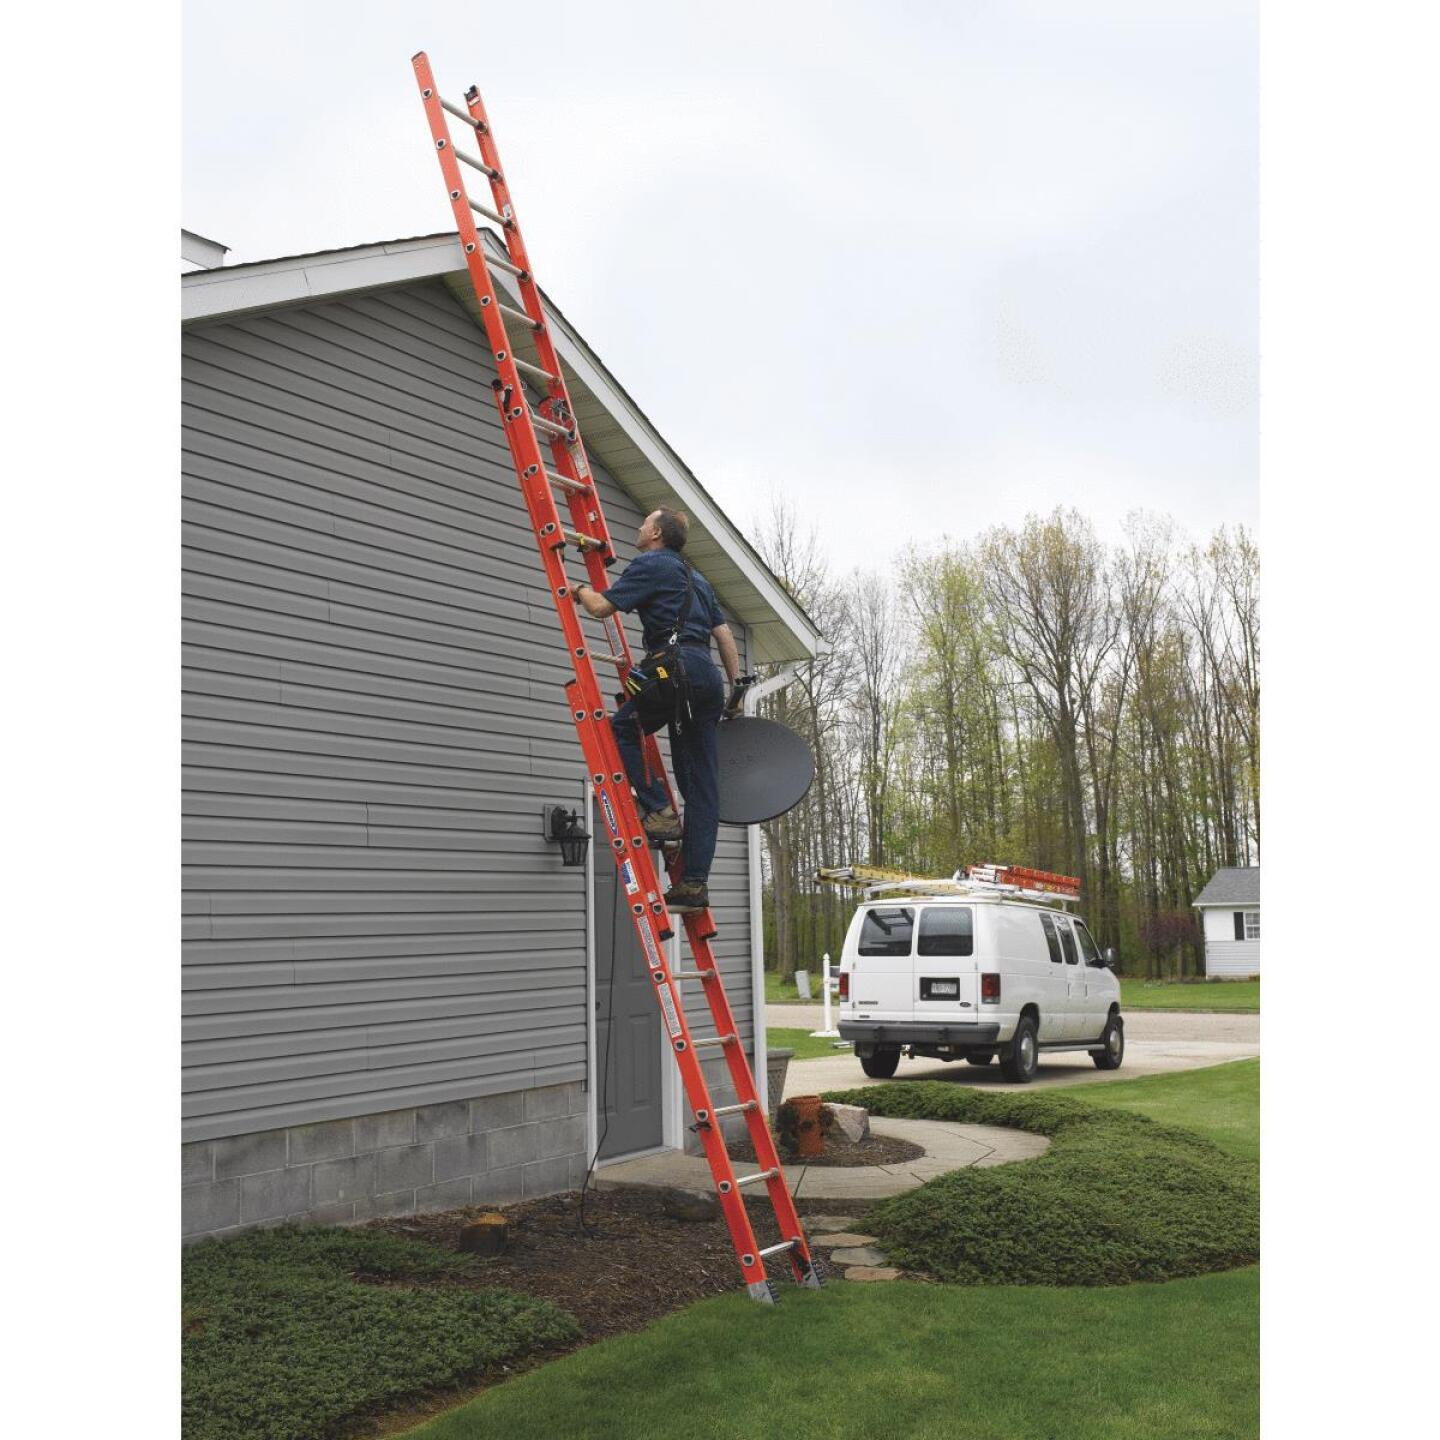 Werner 24 Ft. Compact Fiberglass Extension Ladder with 300 Lb. Load Capacity Type IA Duty Rating Image 4